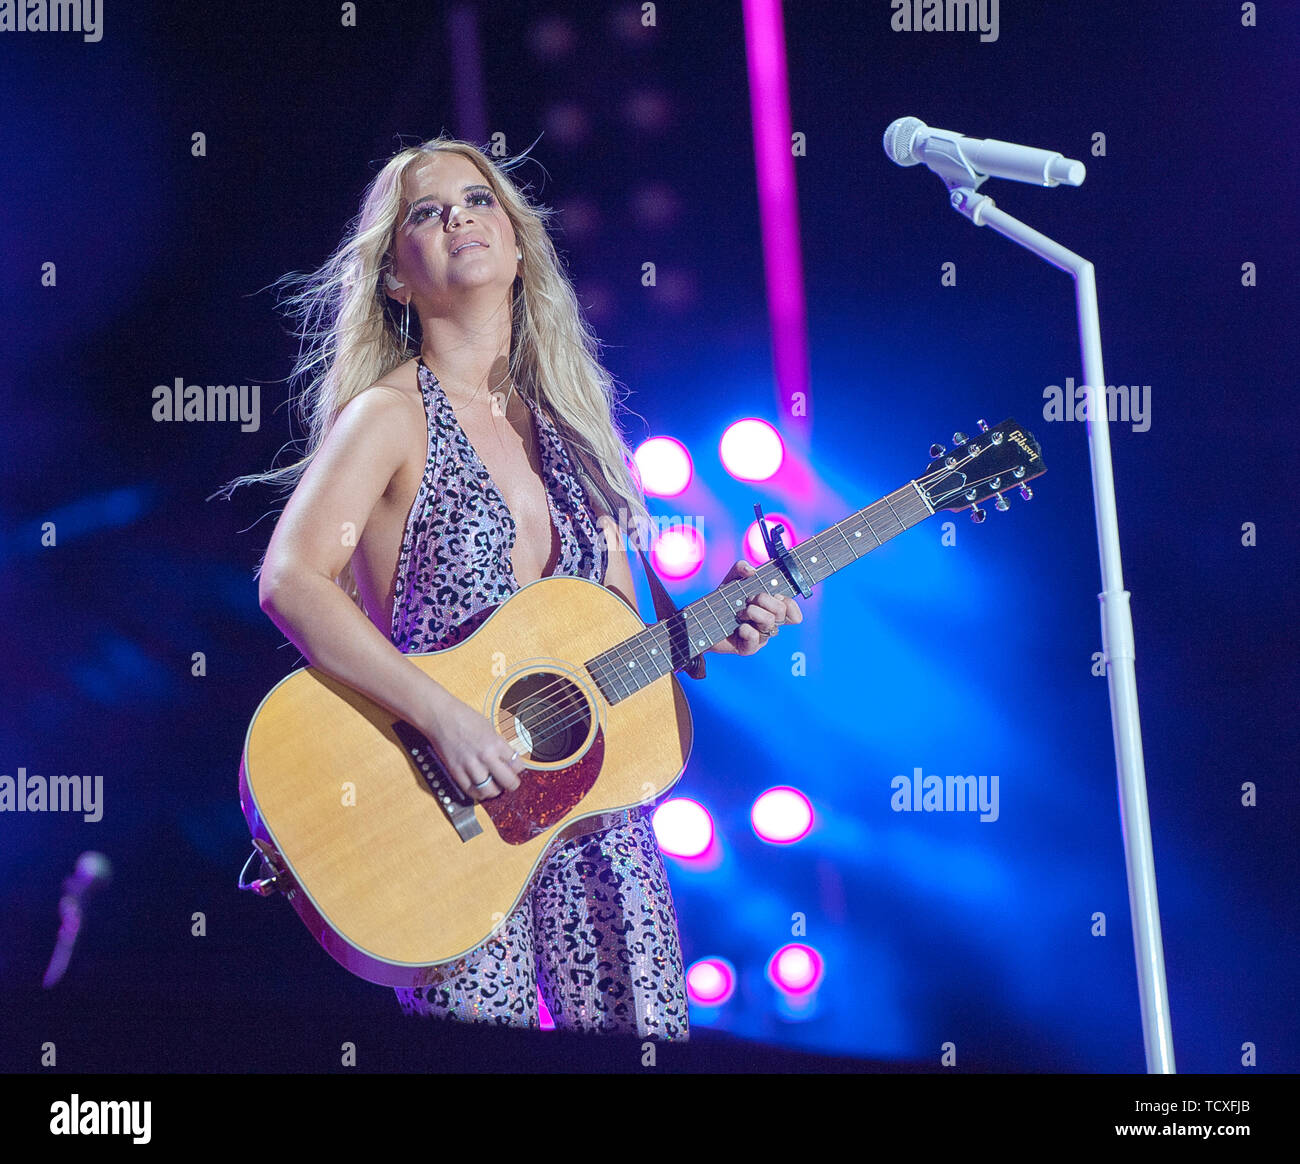 June 9, 2019 - Nashville, Tennessee; USA -  Musician MAREN MORRIS performs live at Nissan Stadium as part of the 2019 CMA Music Festival that took place in downtown Nashville.   Copyright 2019 Jason Moore. (Credit Image: © Jason Moore/ZUMA Wire) - Stock Image